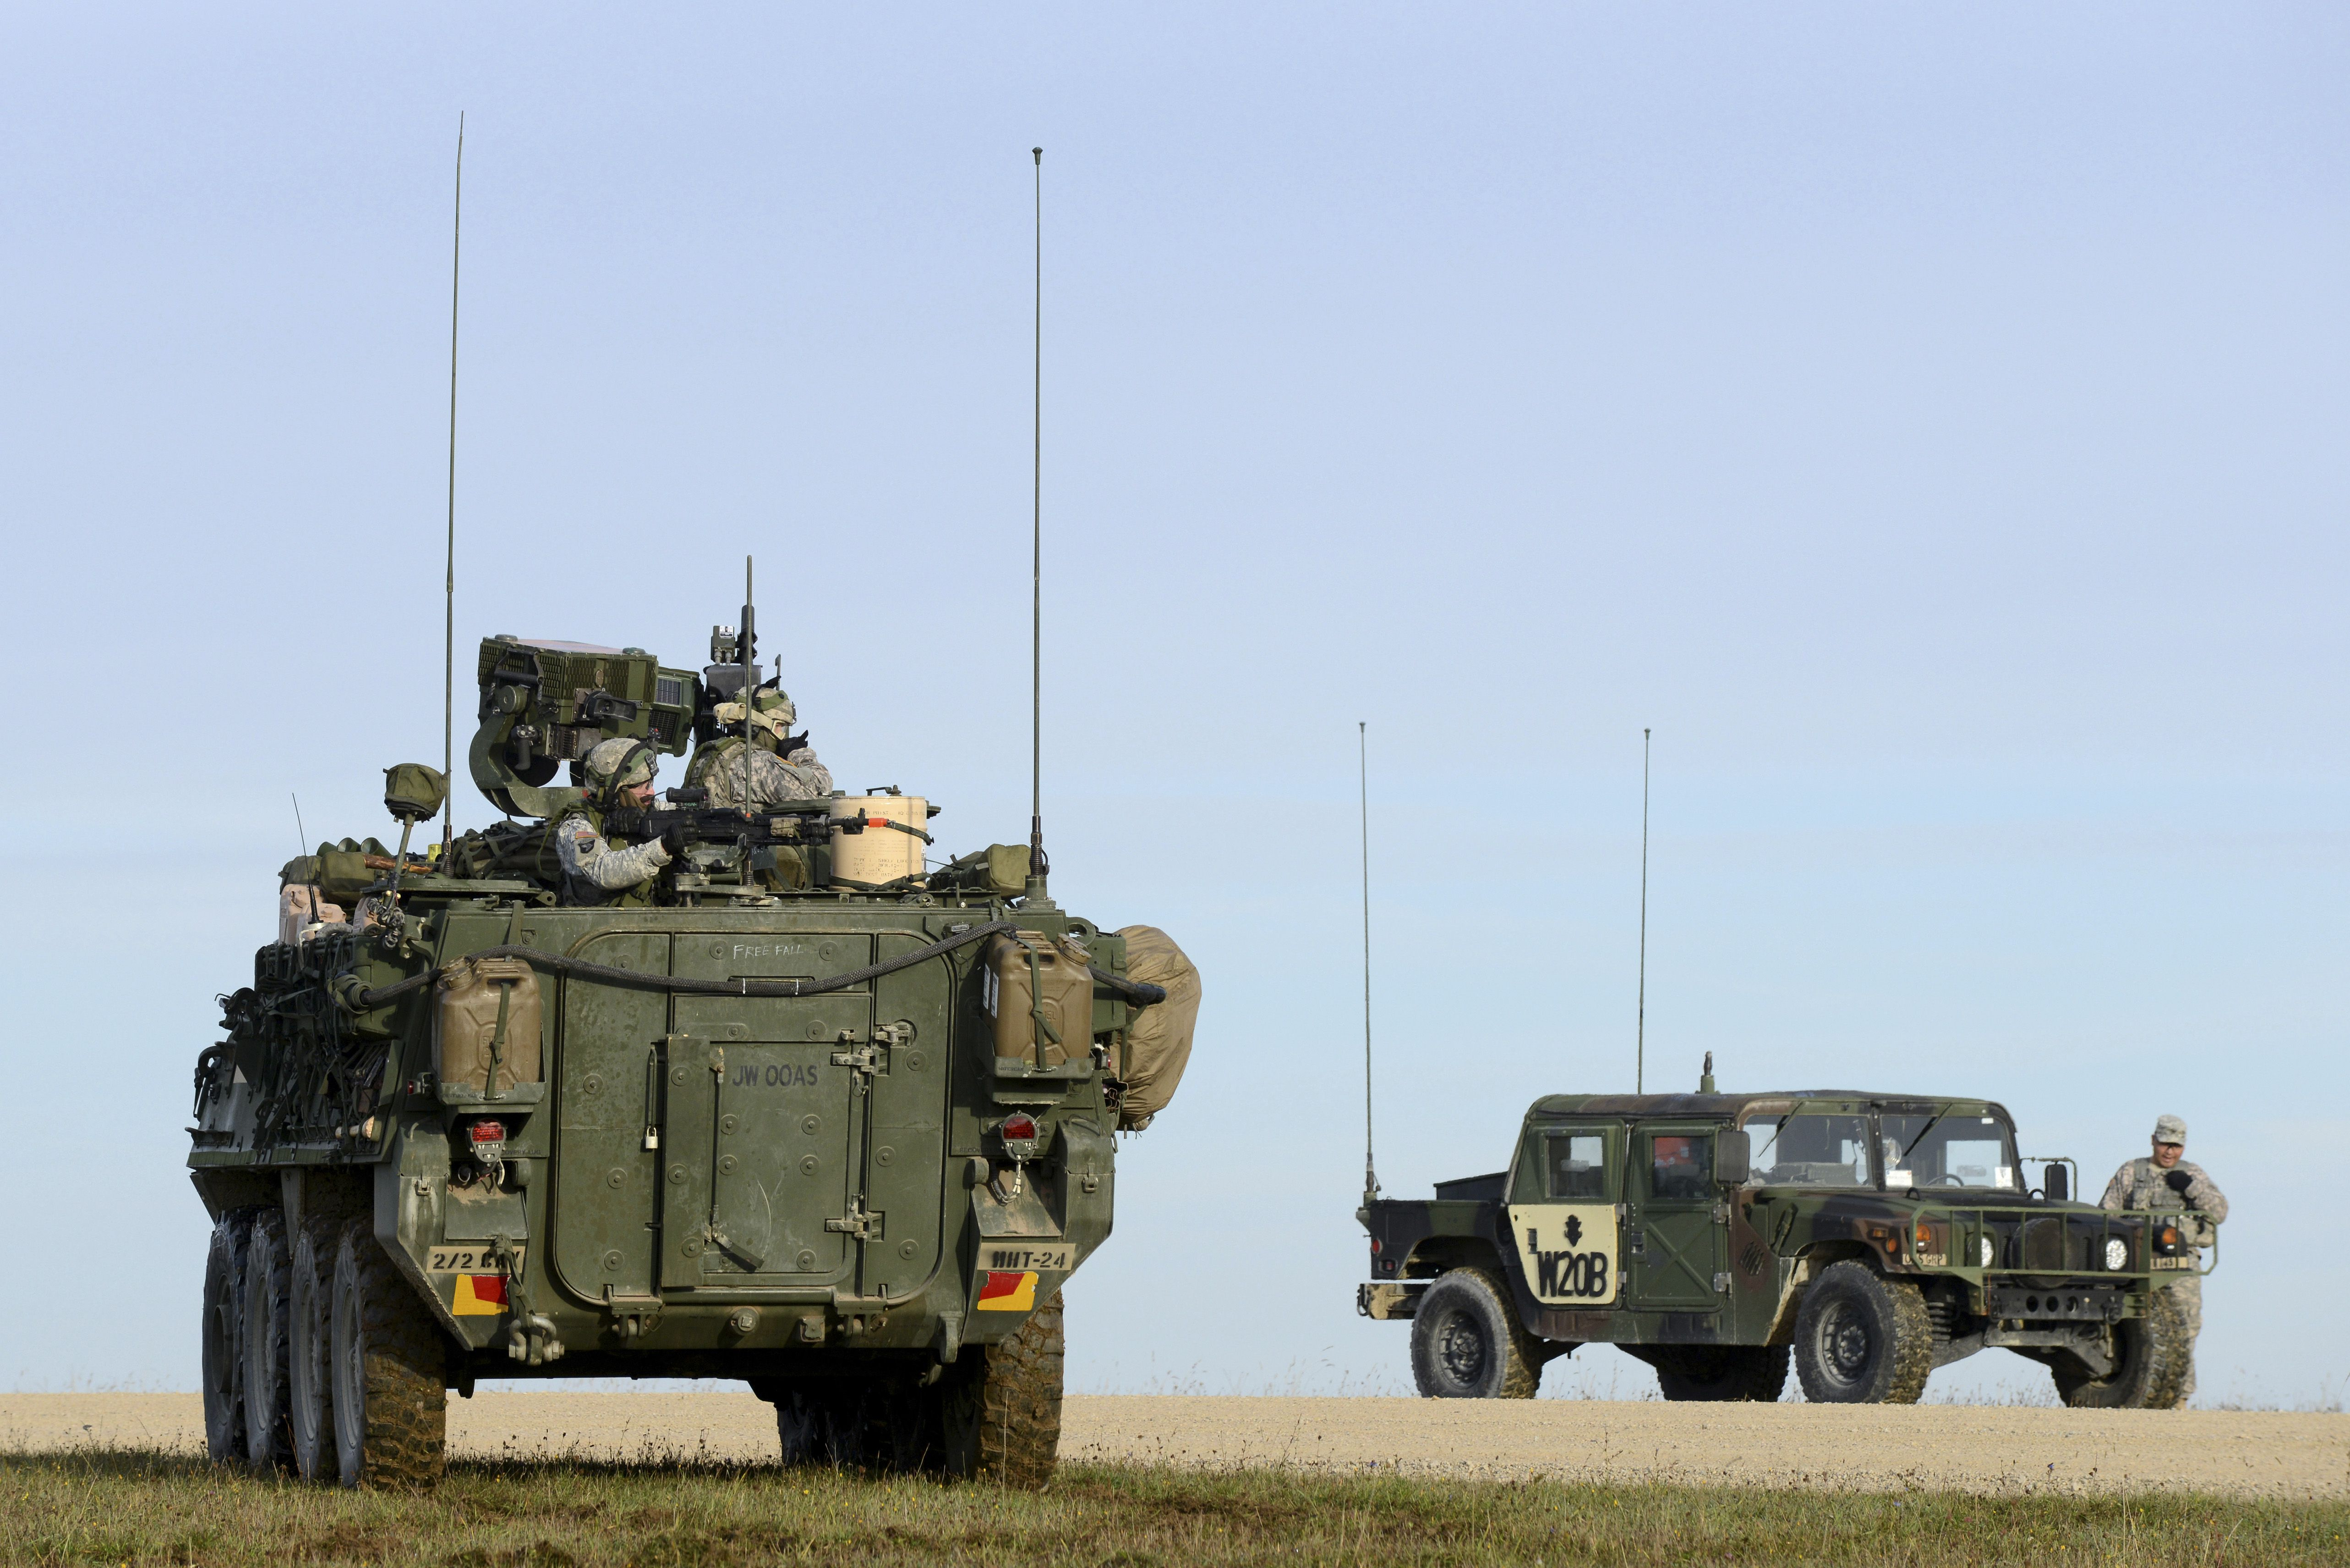 U.S. Army Europe Stryker soldiers aim at targets at the Grafenwoehr Training Area.